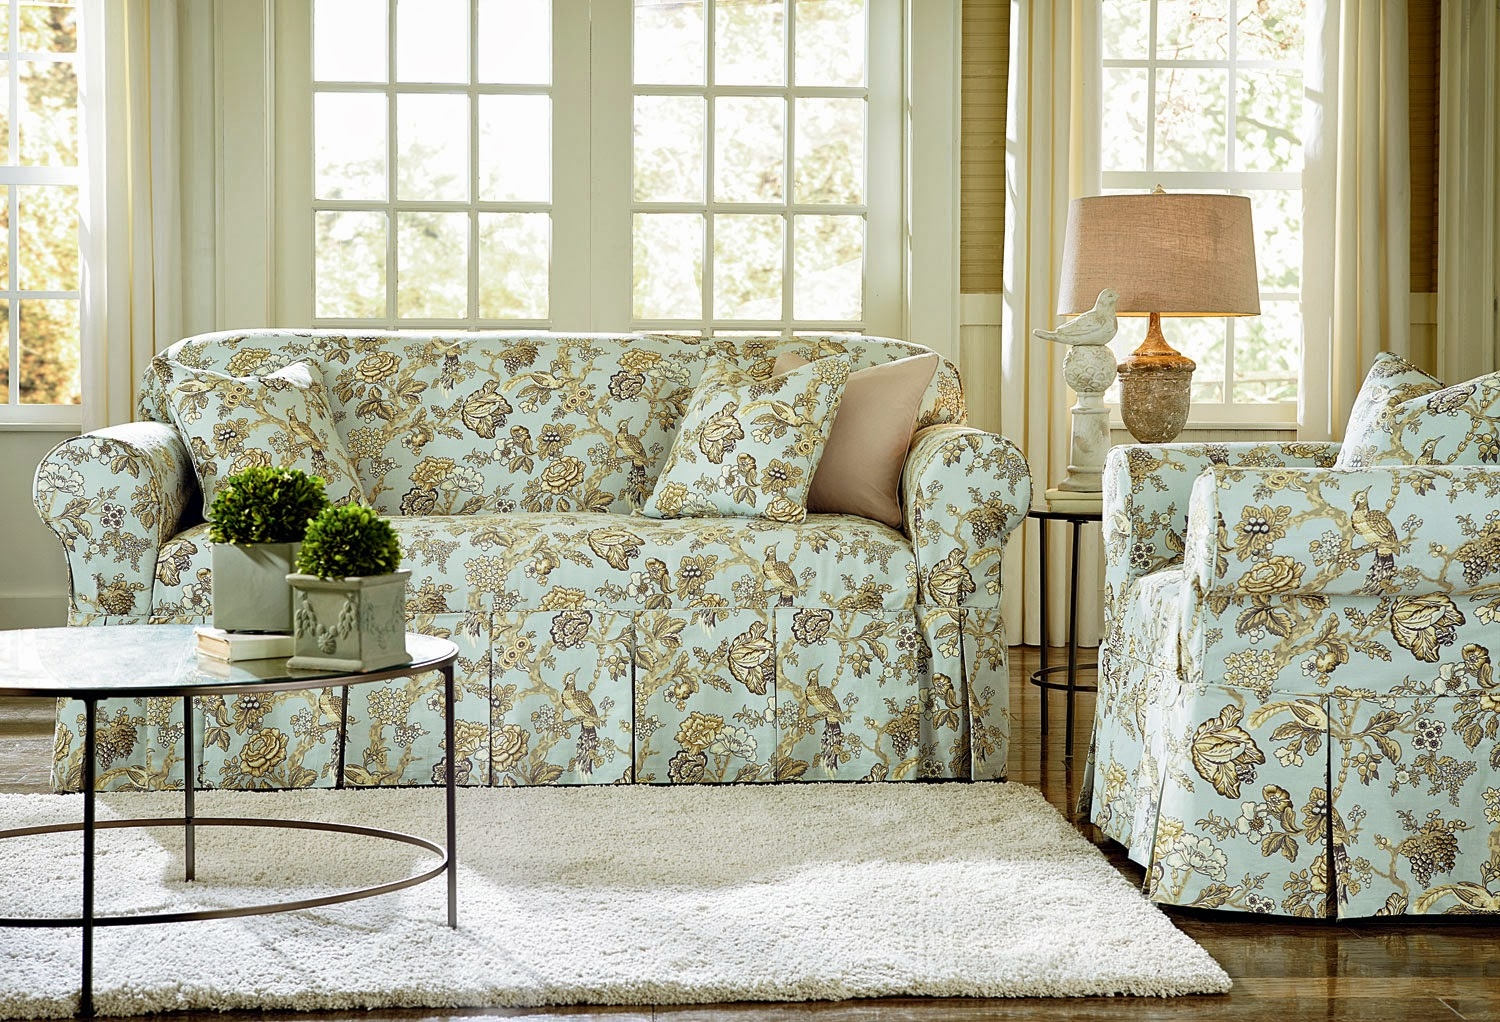 Sure Fit Slipcovers Blog Within Slipcovers For Chairs And Sofas (Image 13 of 15)